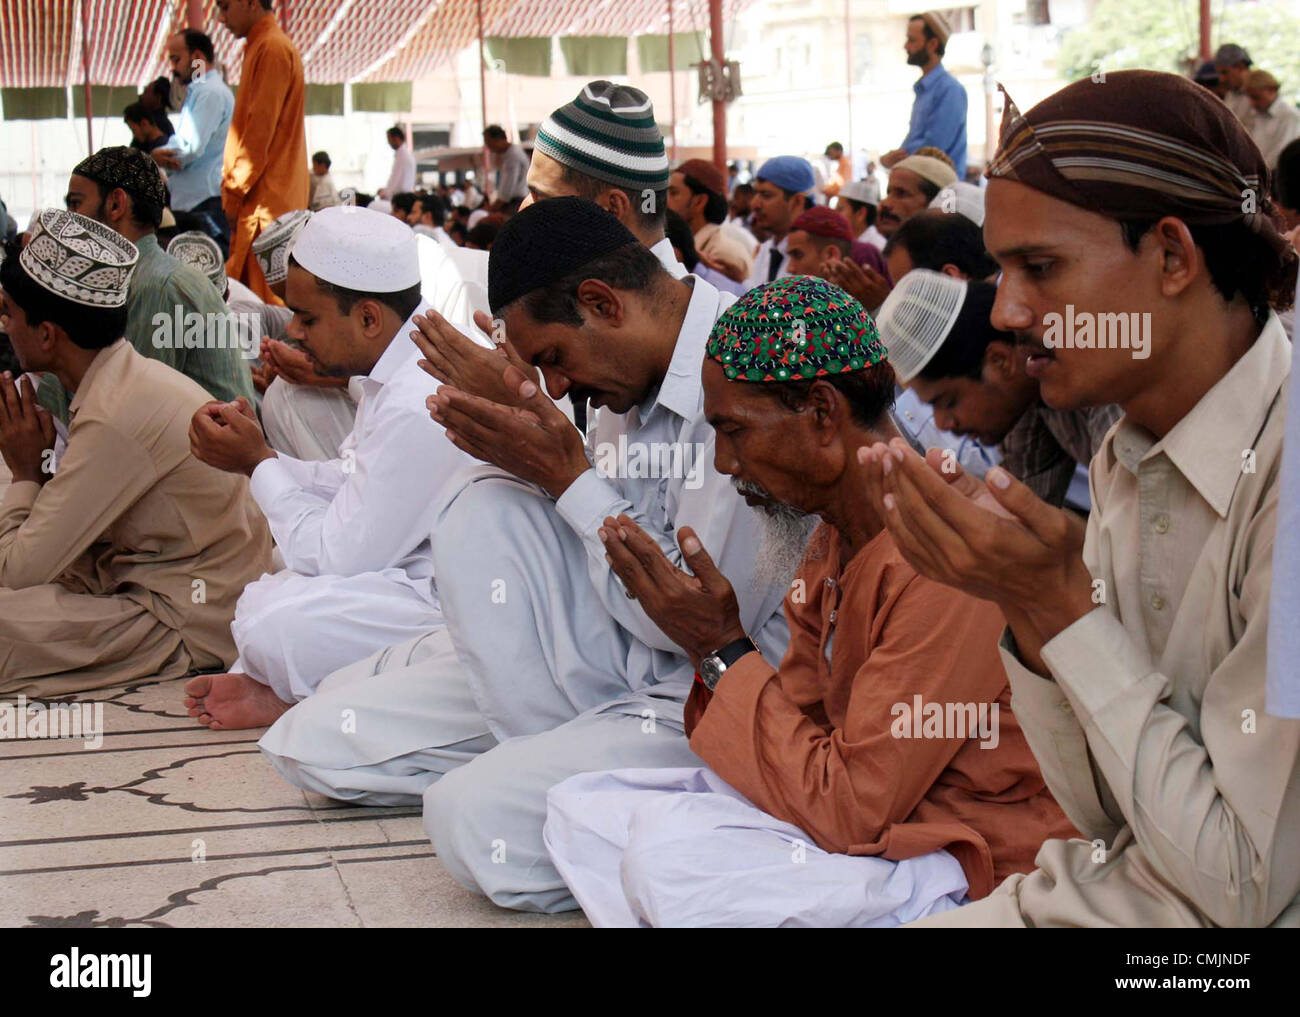 Faithful Muslims Offer Prayer At A Memon Mosque During The Last Friday Of Holy Month Ramazan Ul Mubarak In Karachi On FridayAugust 17 2012